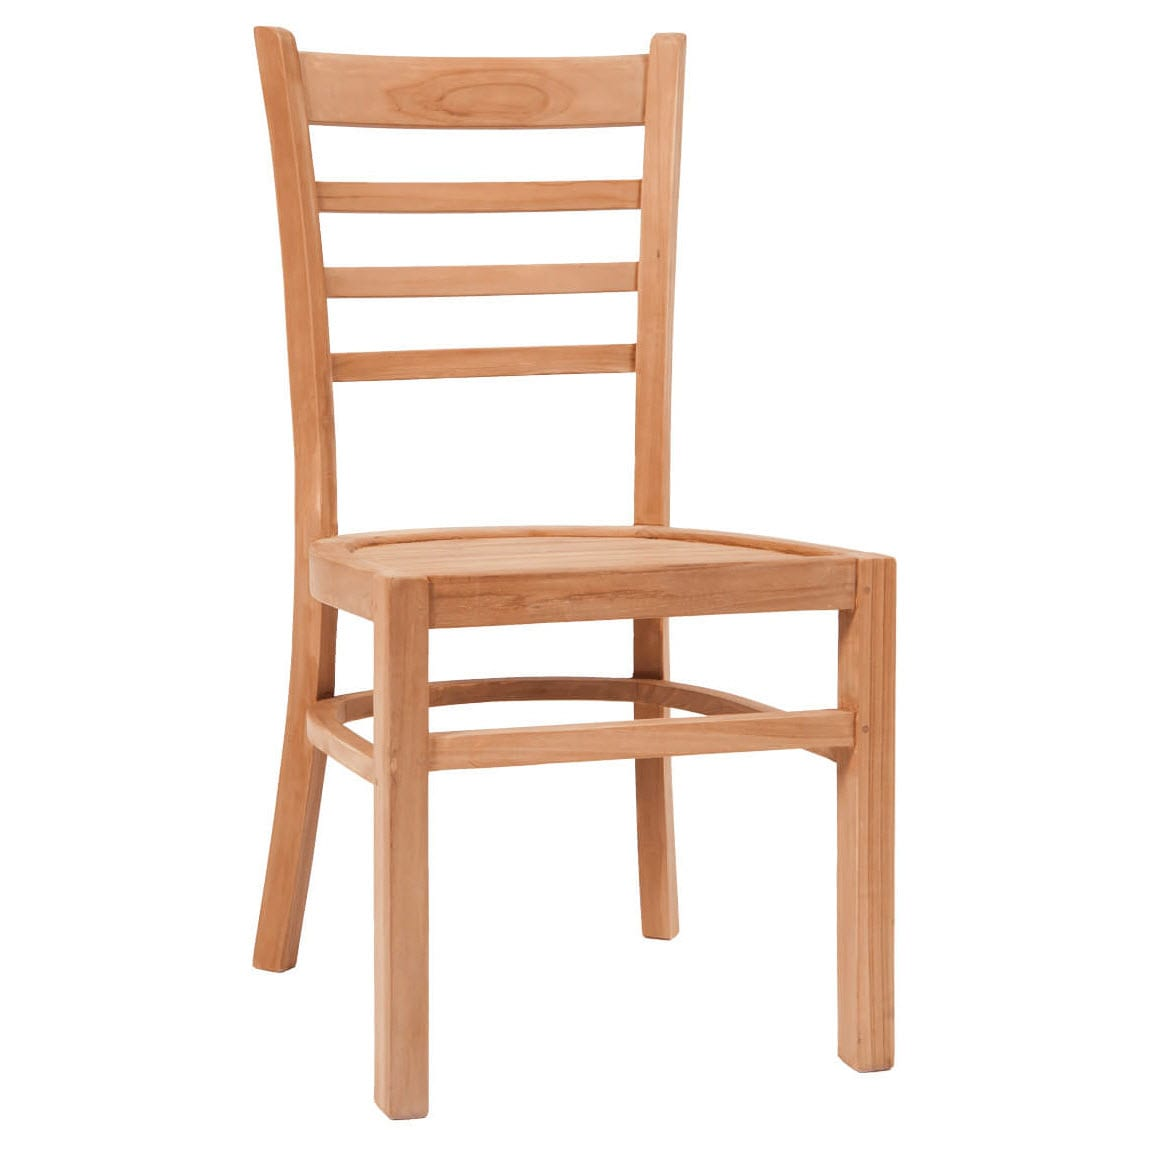 Ladder Back Natural Teak Wood Chair